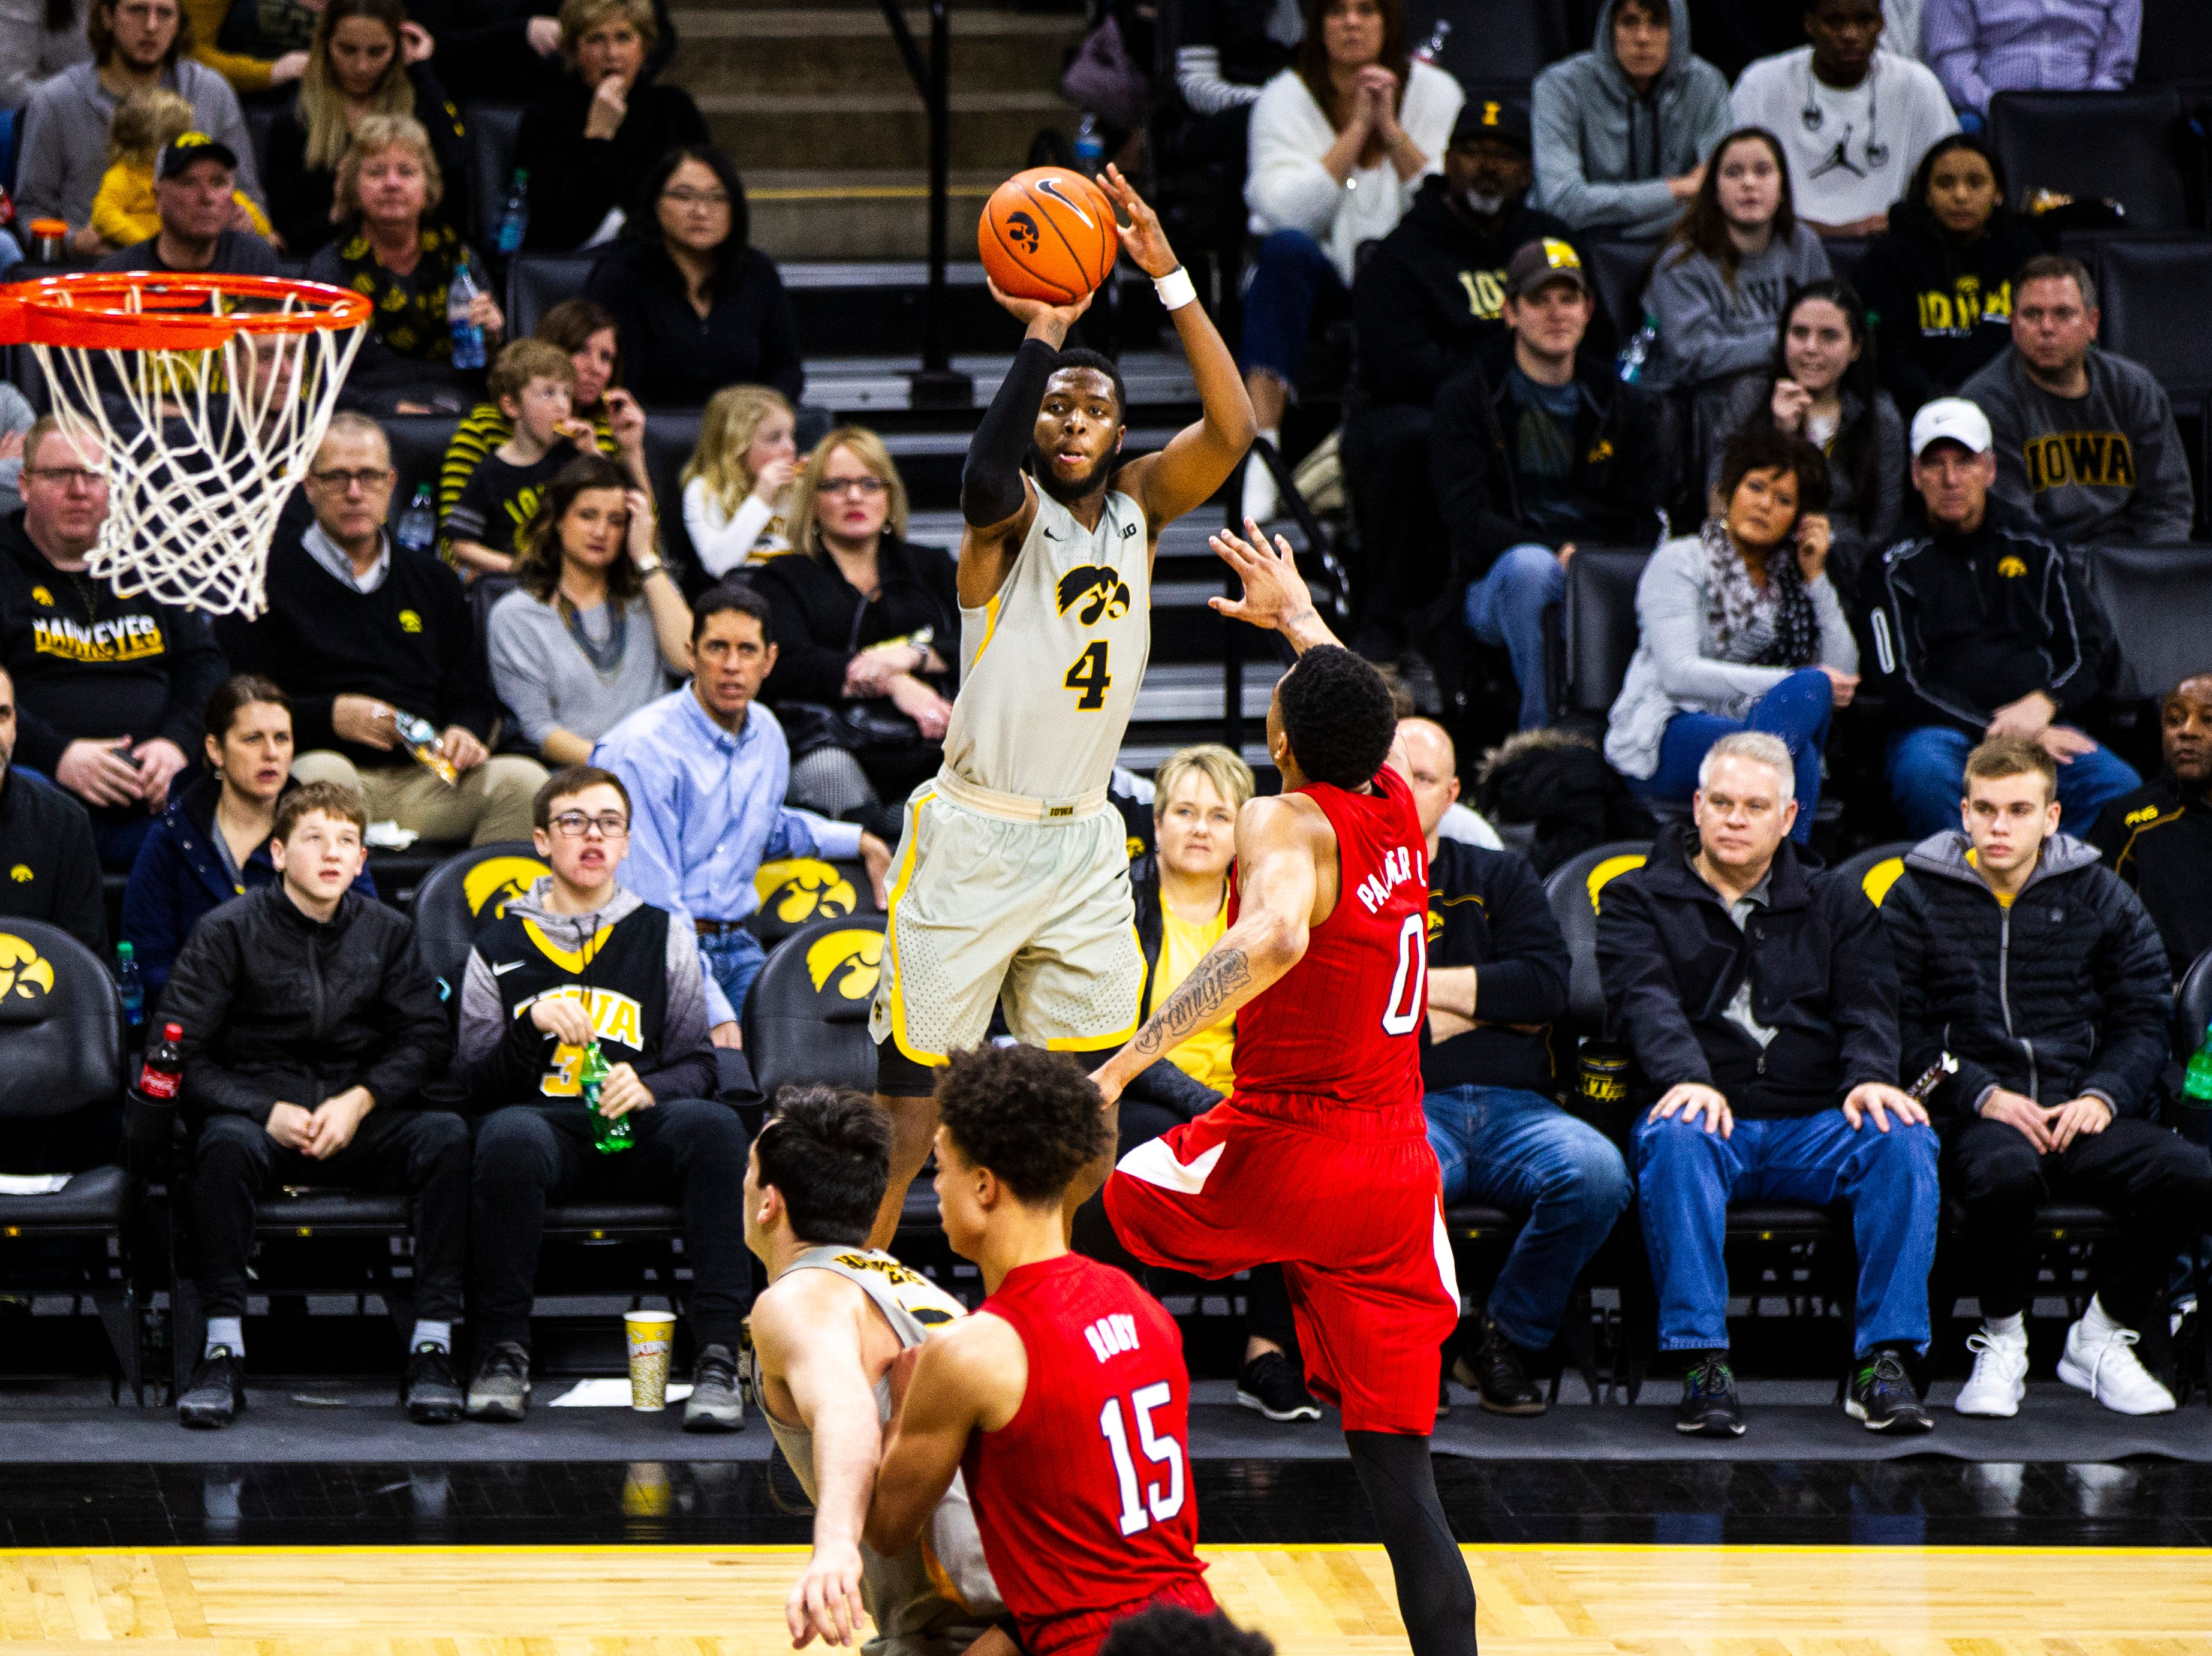 Iowa guard Isaiah Moss (4) shoots a 3-point basket during a NCAA Big Ten Conference men's basketball game on Sunday, Jan. 6, 2019, at the Carver-Hawkeye Arena in Iowa City, Iowa.